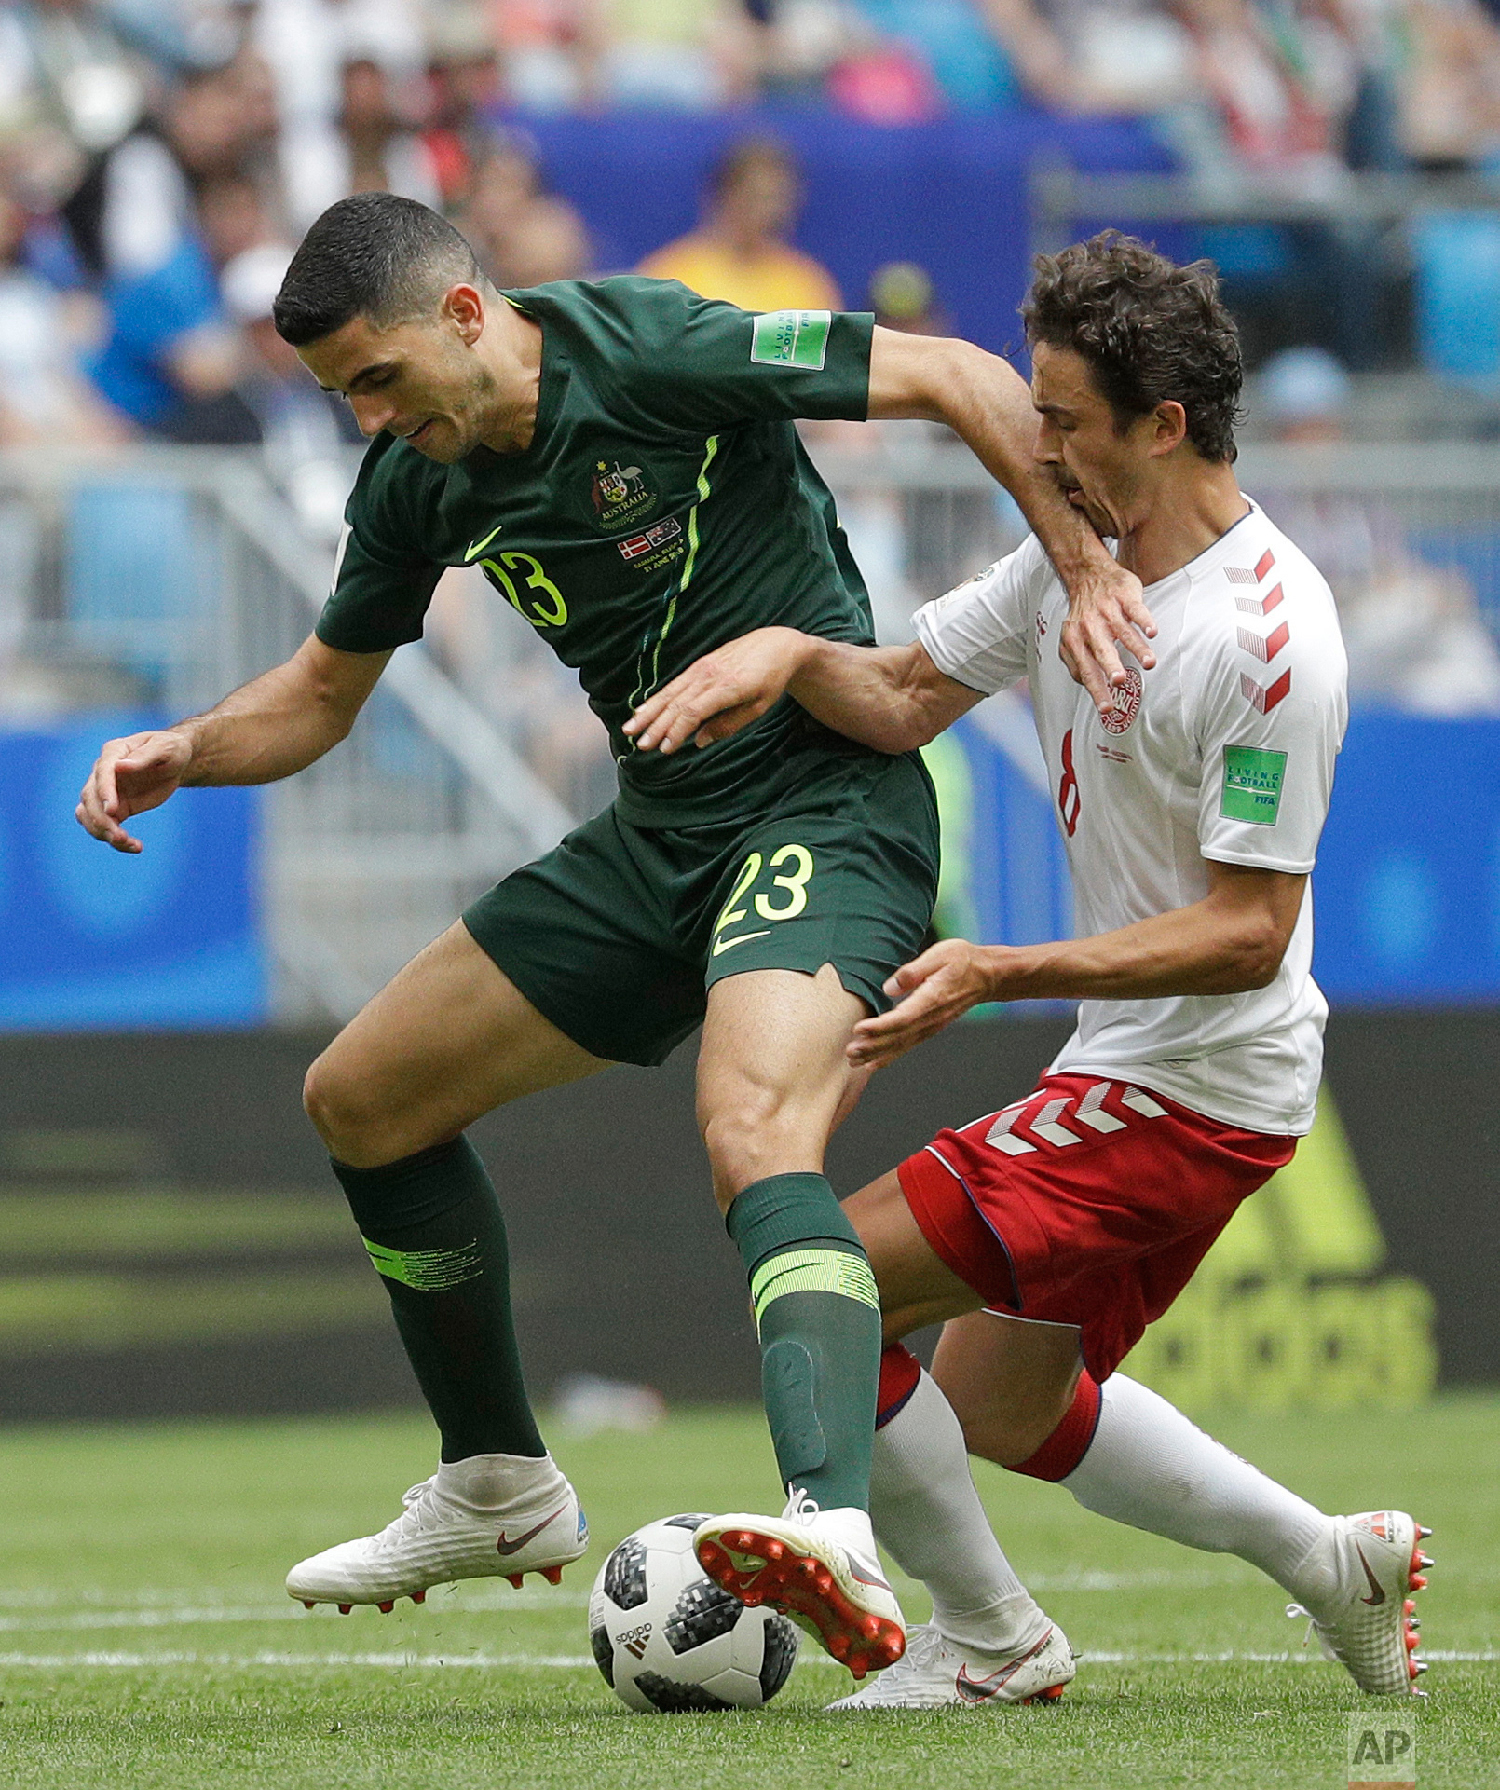 Australia's Tom Rogic, left, is challenged by Denmark's Thomas Delaney during the group C match between Denmark and Australia at the 2018 soccer World Cup in the Samara Arena in Samara, Russia, Thursday, June 21, 2018. (AP Photo/Gregorio Borgia)